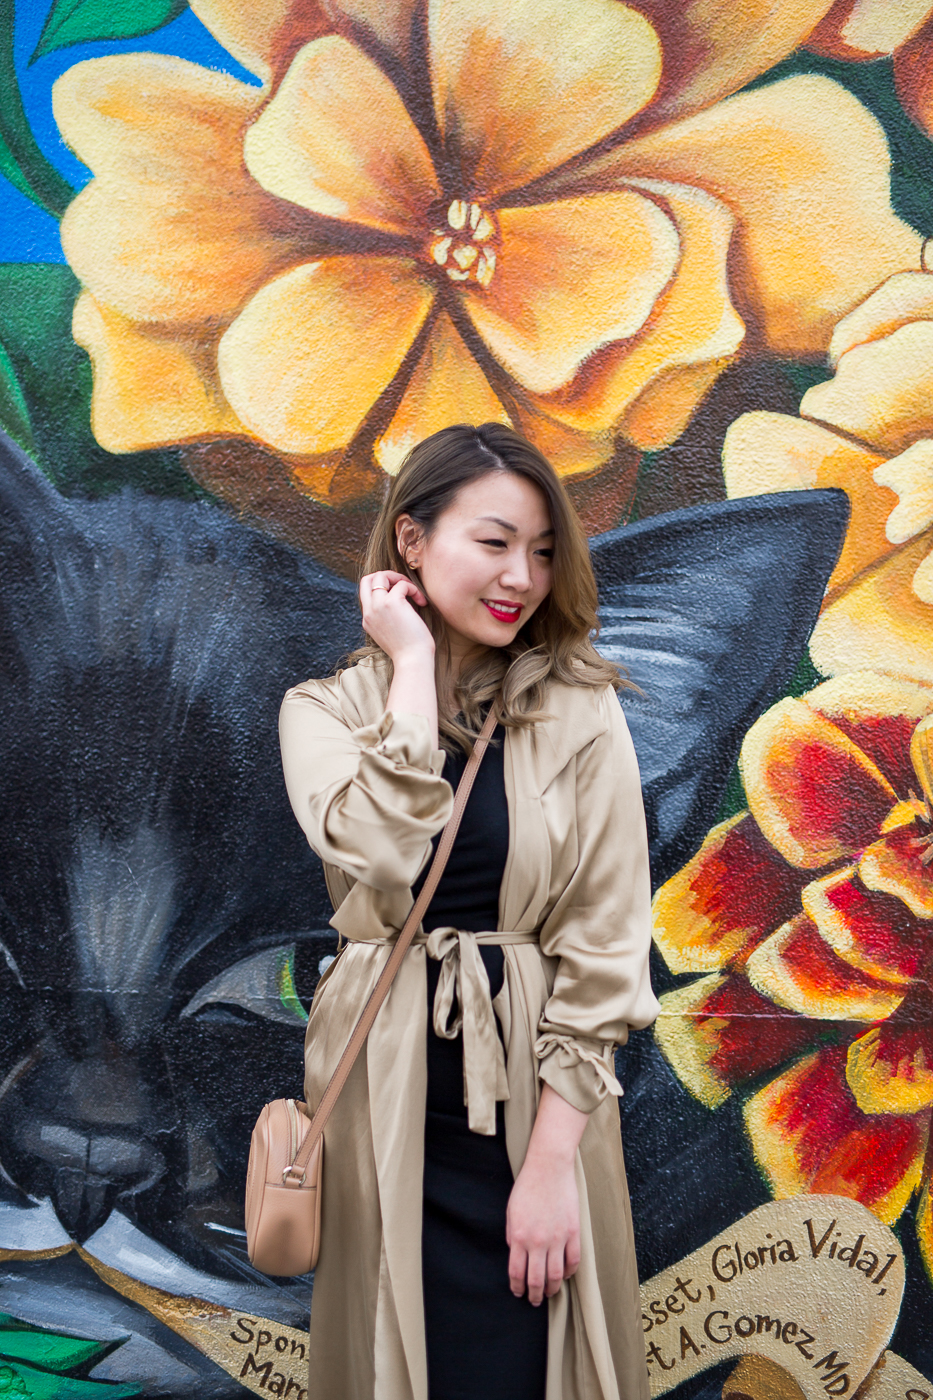 Aritzia Le Fou Wilfred Mercier Jacket | The Chic Diary